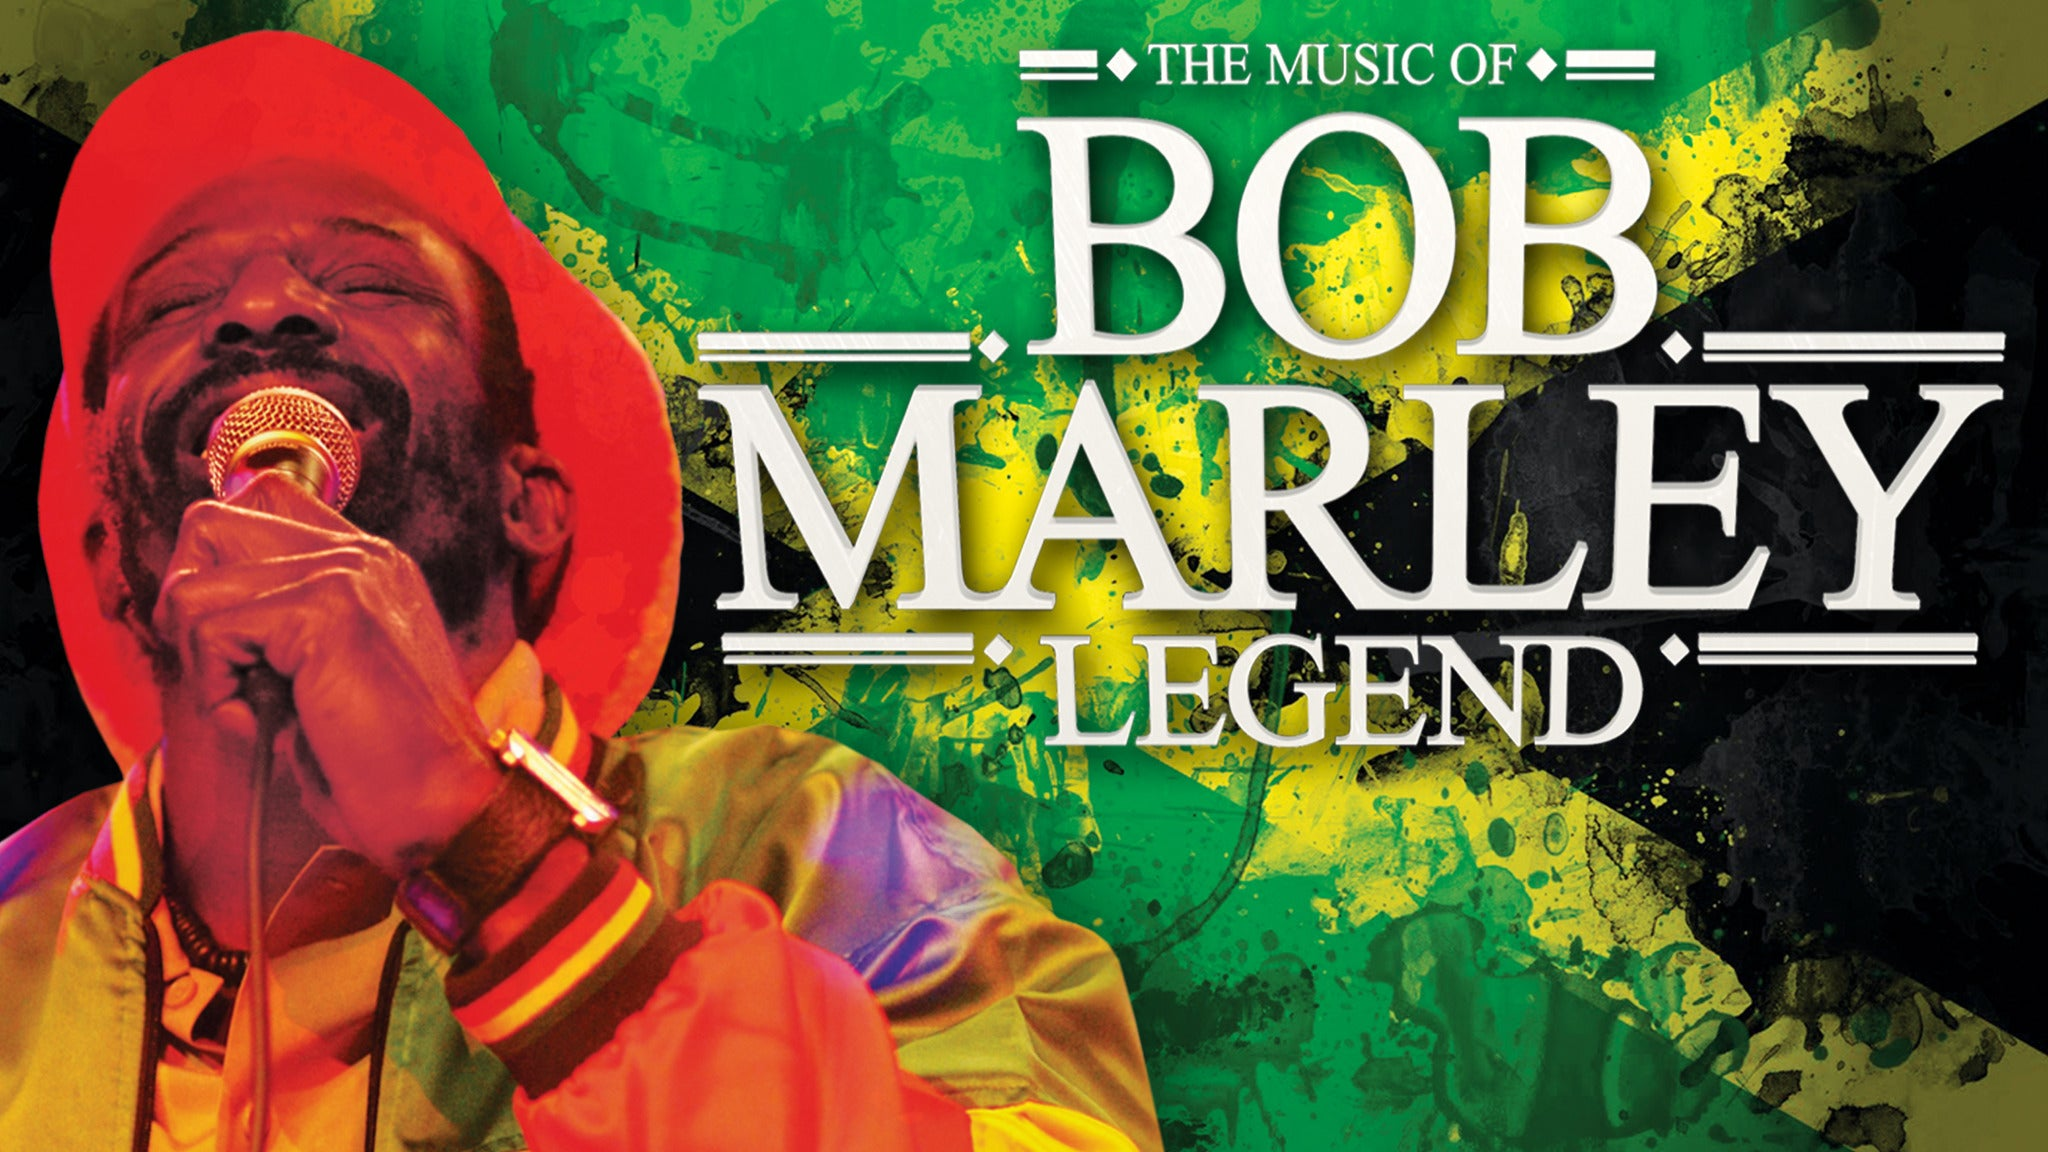 Legend - A Tribute To Bob Marley